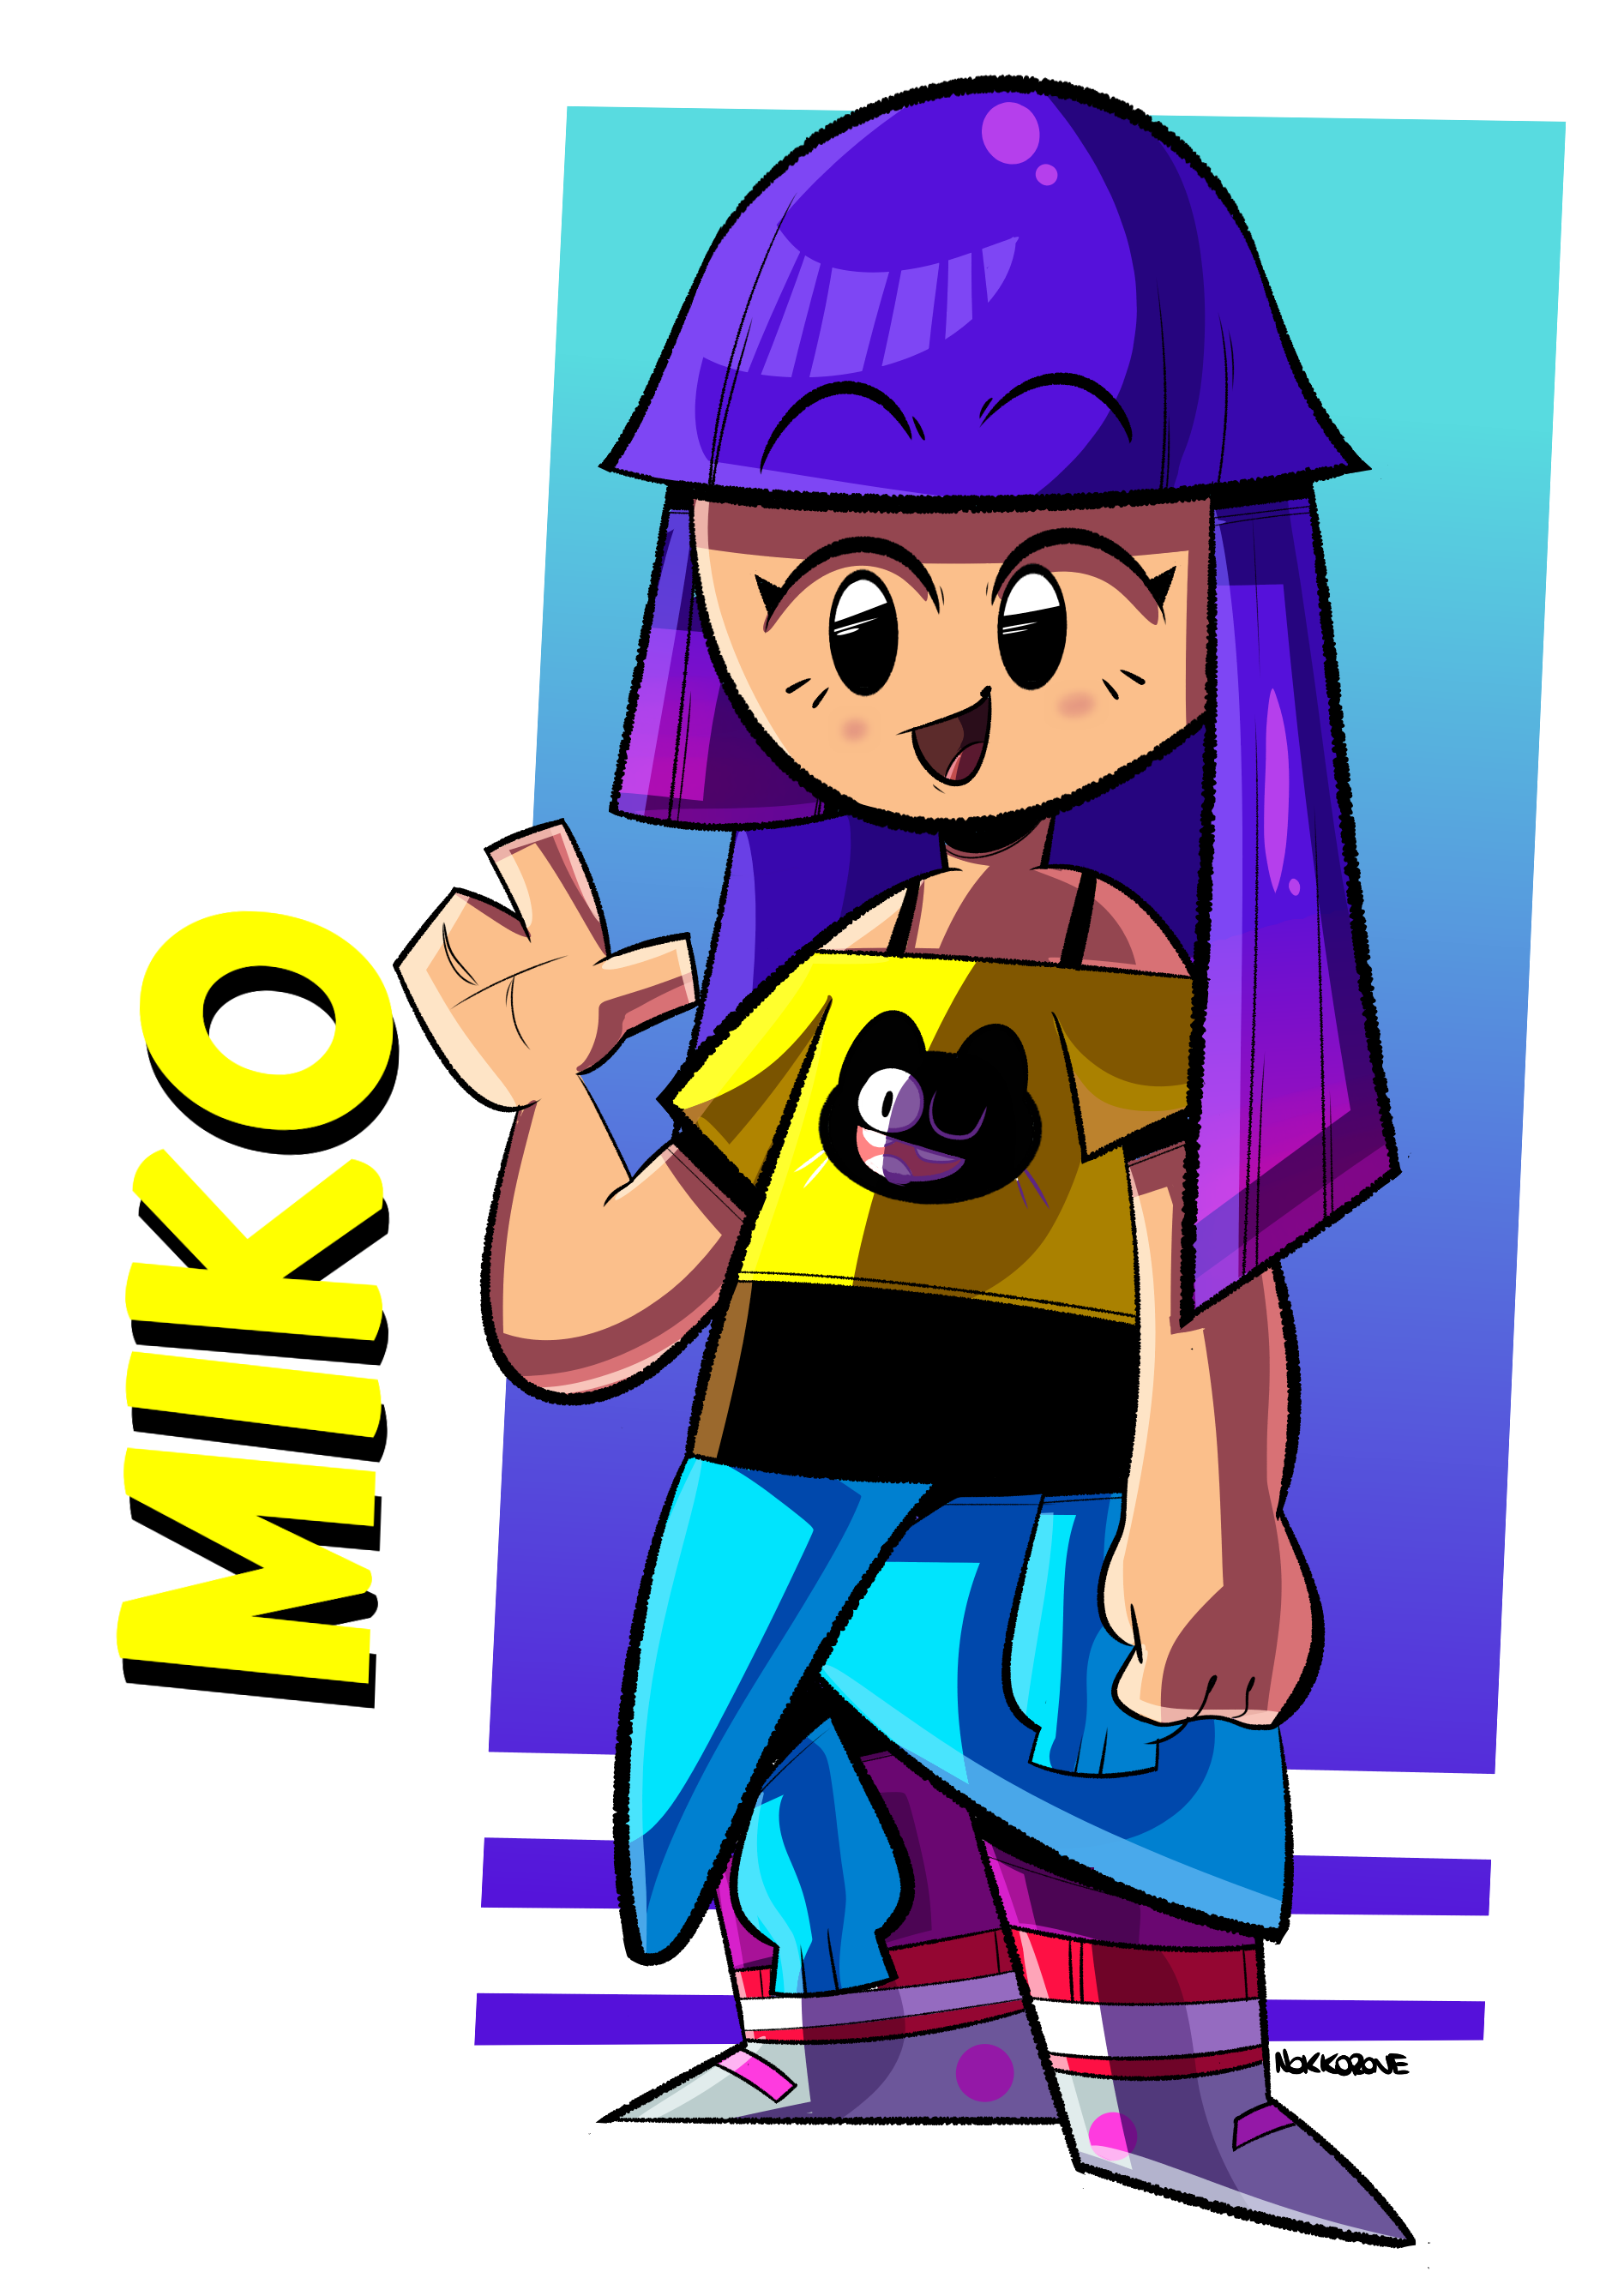 miko by dudgns964 on Newgrounds